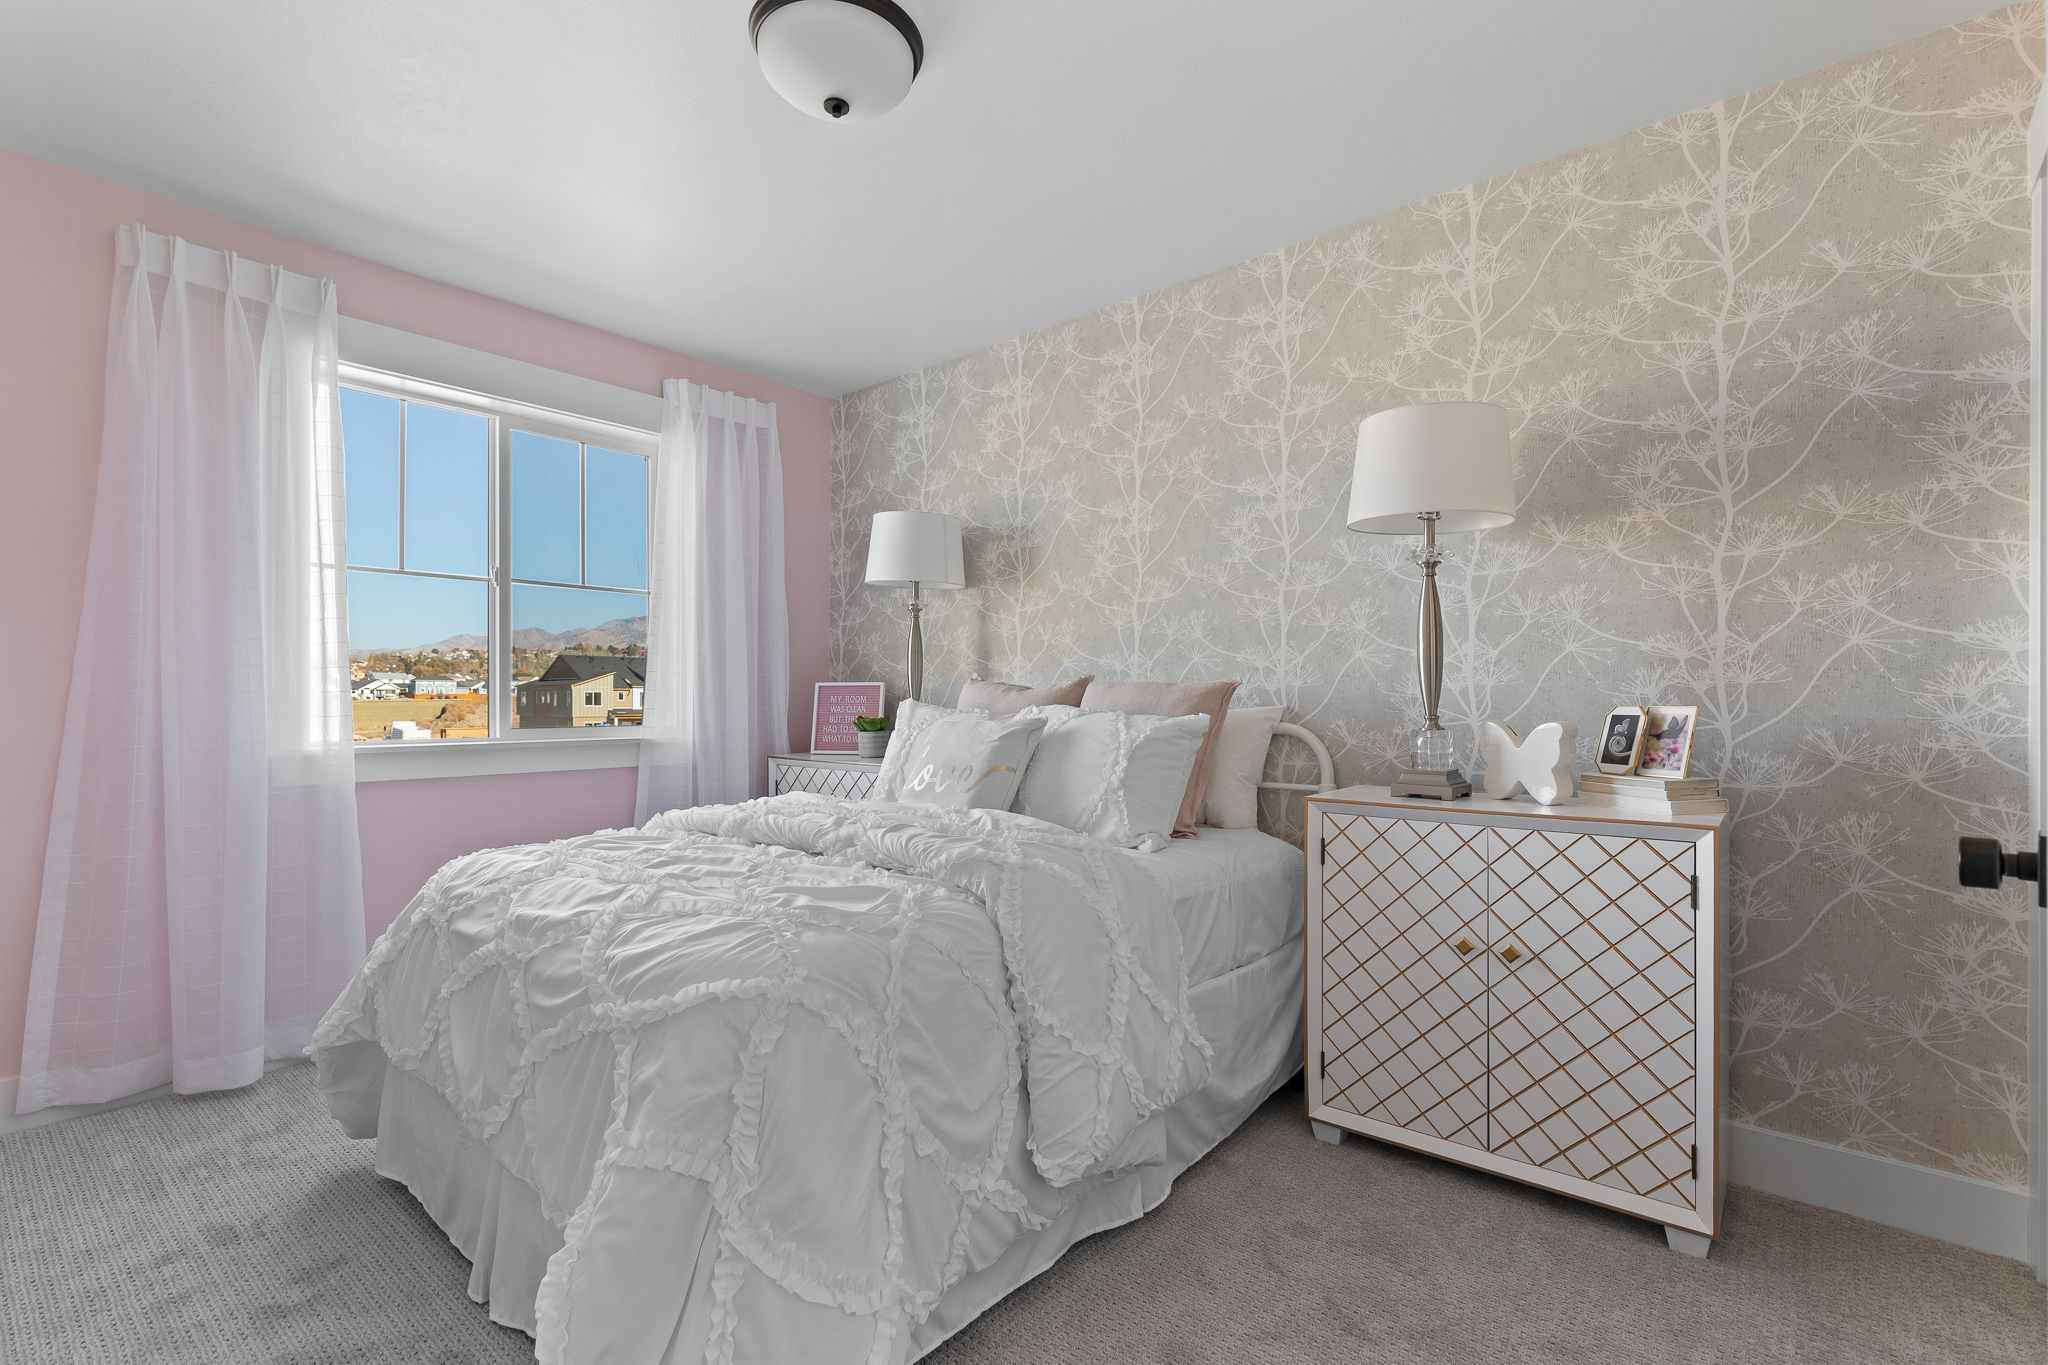 Bedroom featured in the Madison (SOG) By Visionary Homes in Logan, UT